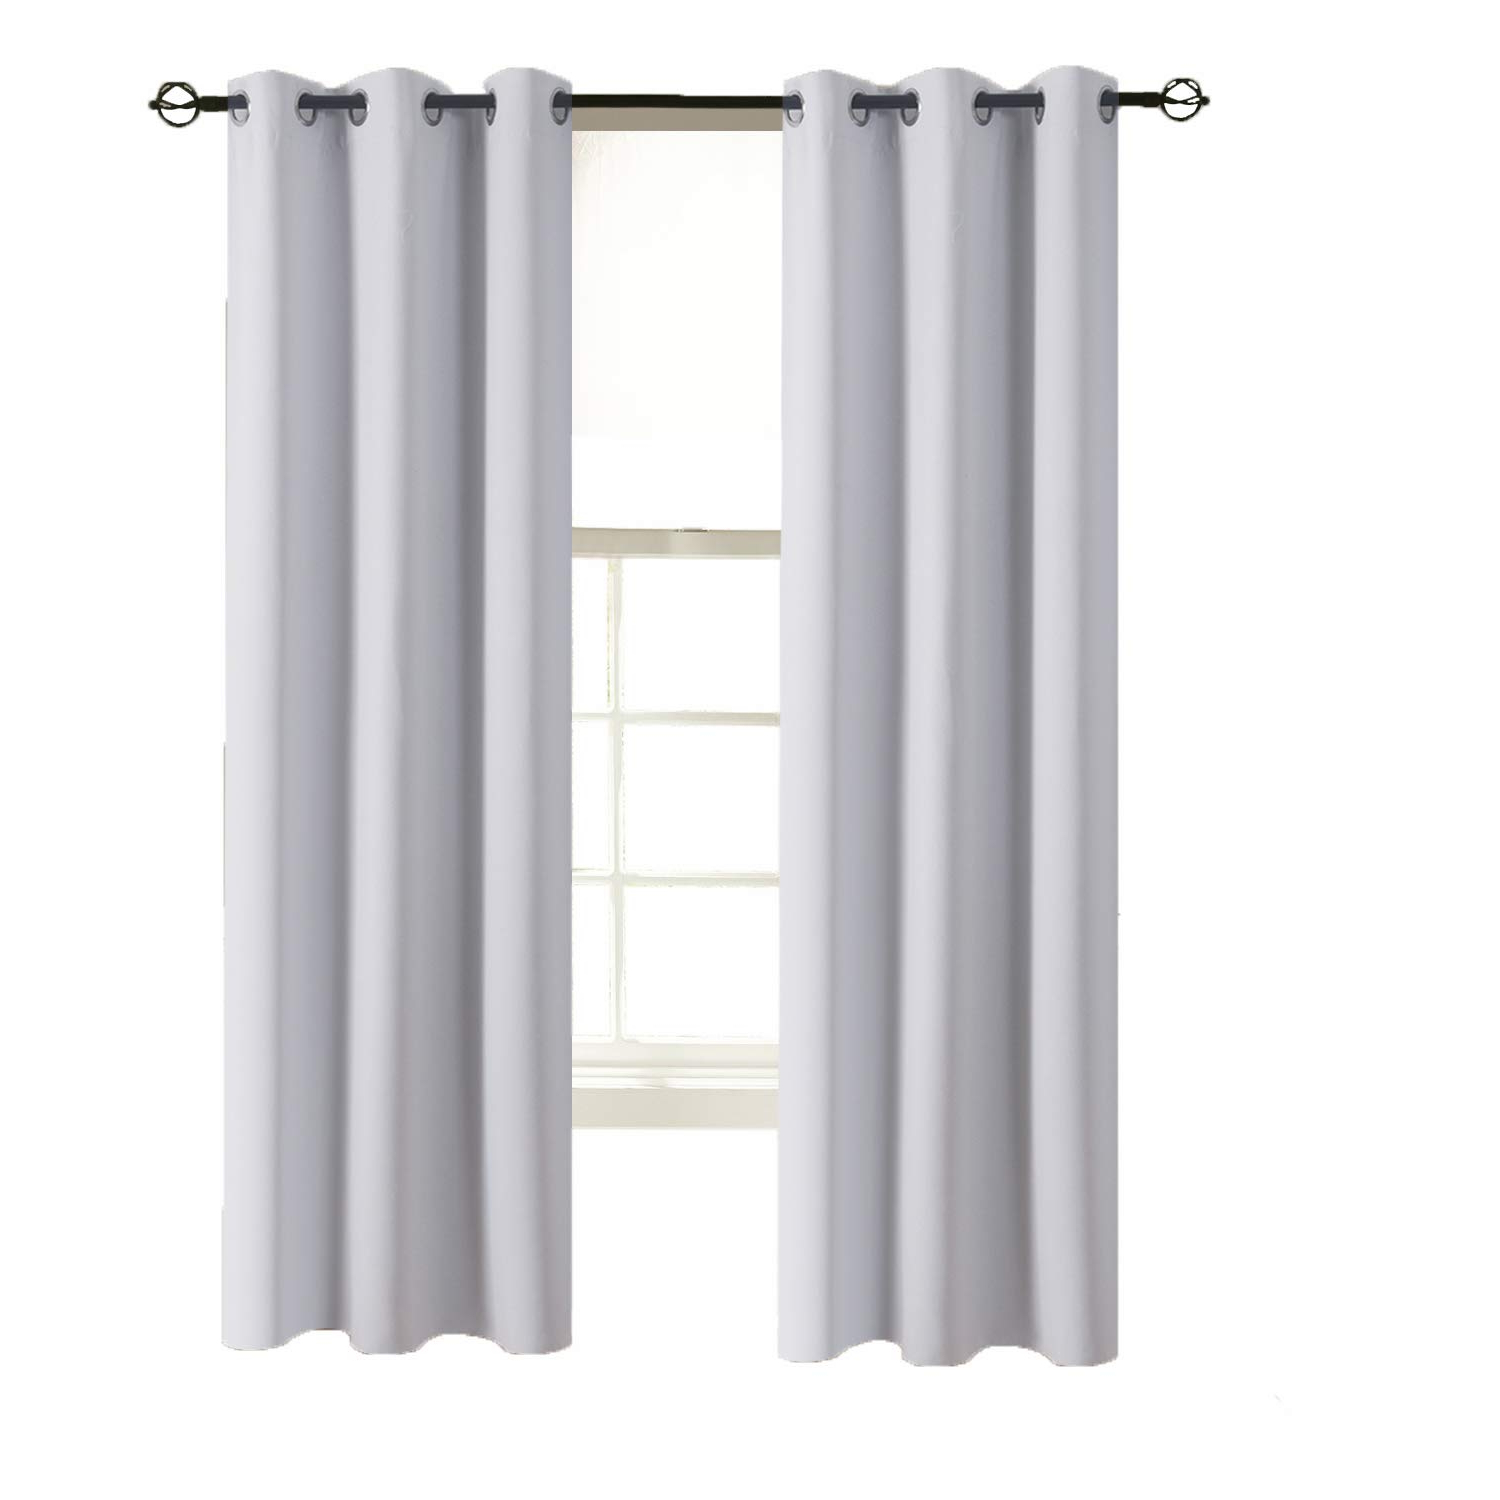 """Recent Keyes Blackout Single Curtain Panels Within Aquazolax Blackout Curtains Window Drapes Solid Blackout Thermal Curtain  Panels 42""""x63"""" With Eyelets Top For Office, Single Panel, Greyish White (Gallery 9 of 20)"""